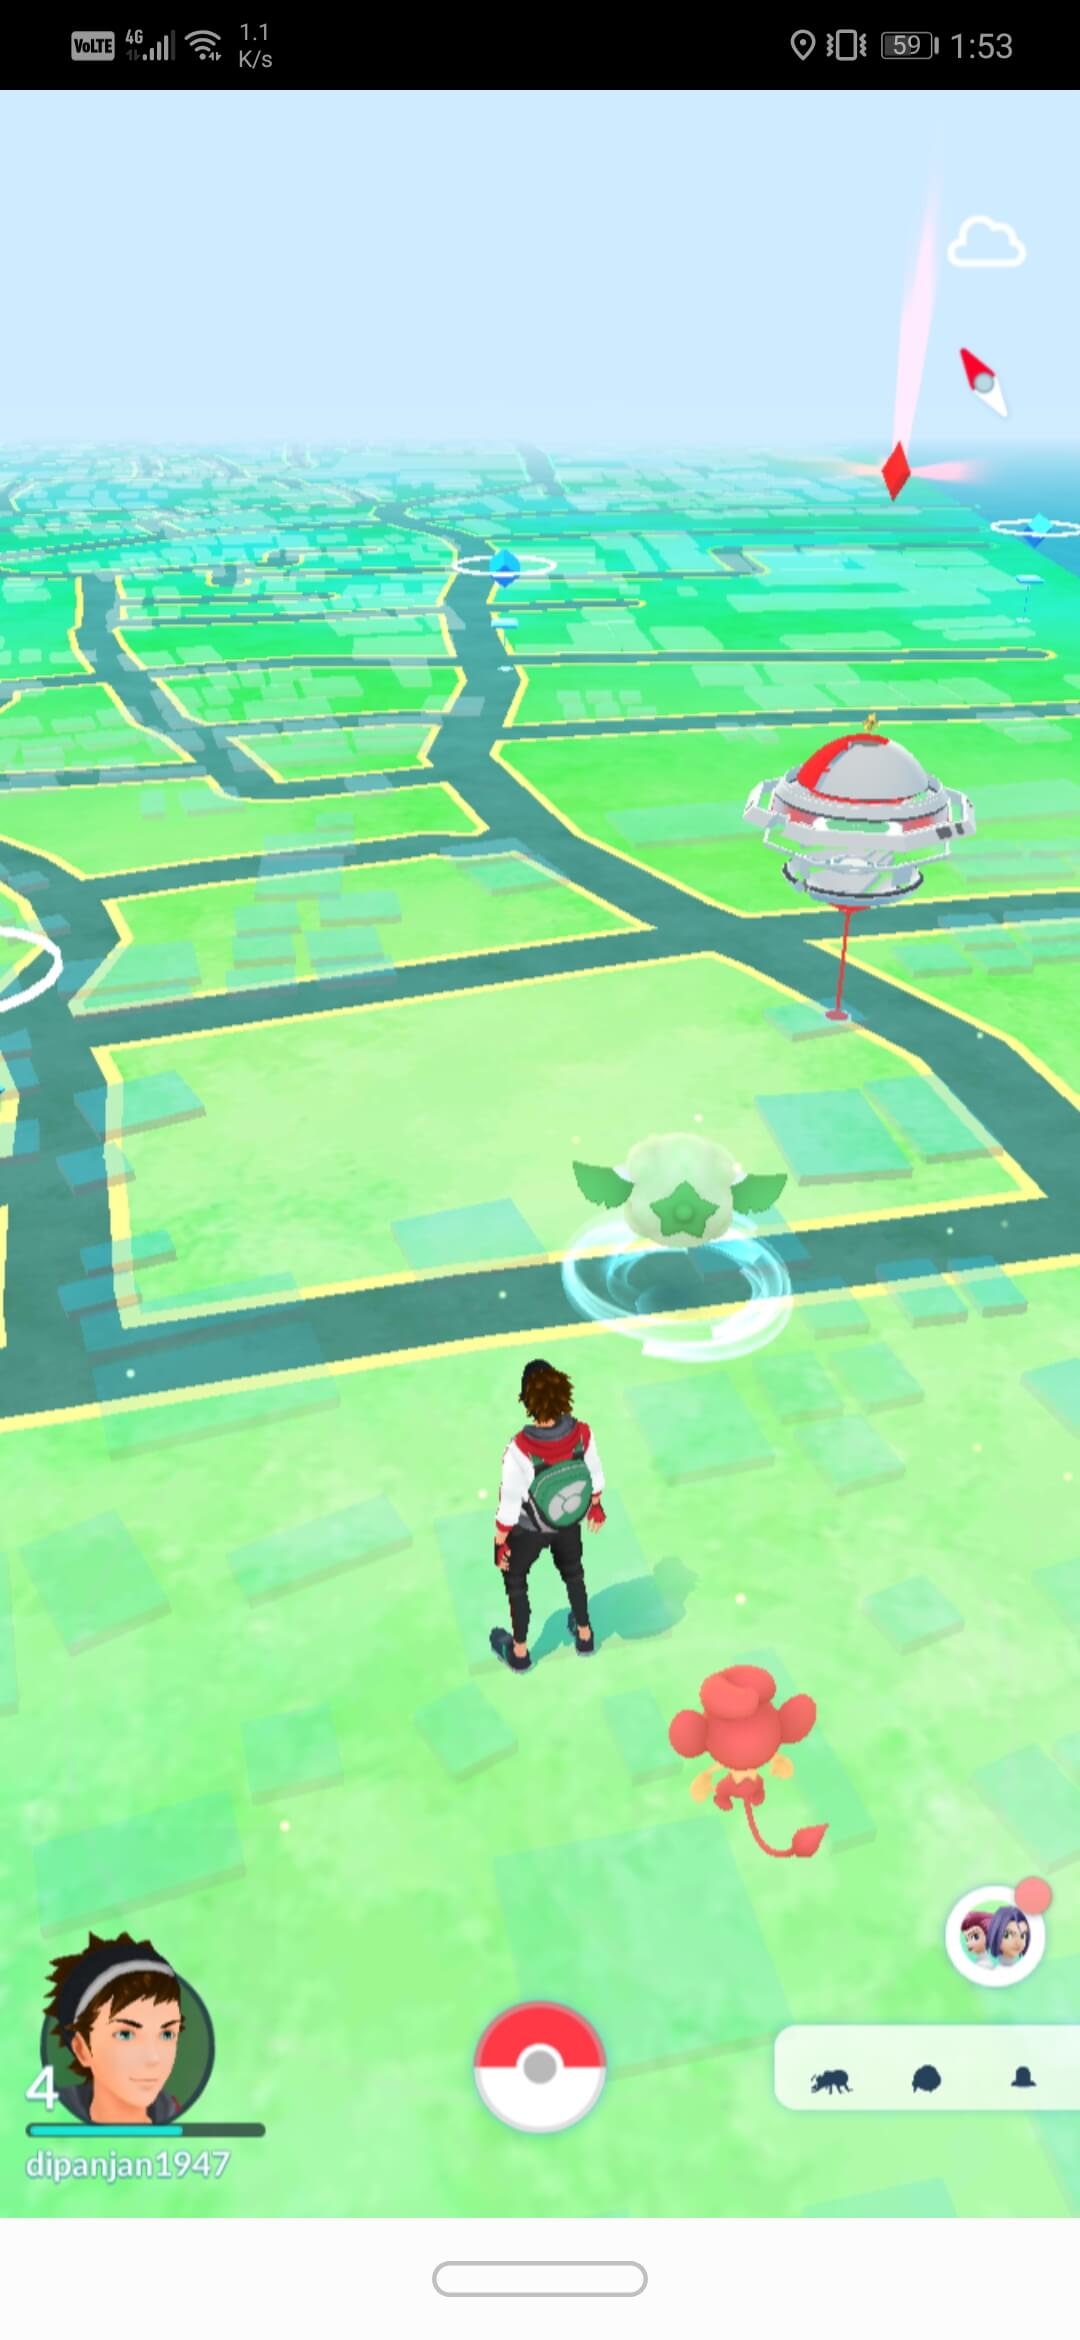 Tap on the Pokéball button at the bottom center of the screen | How To Change Pokémon Go Name After New Update